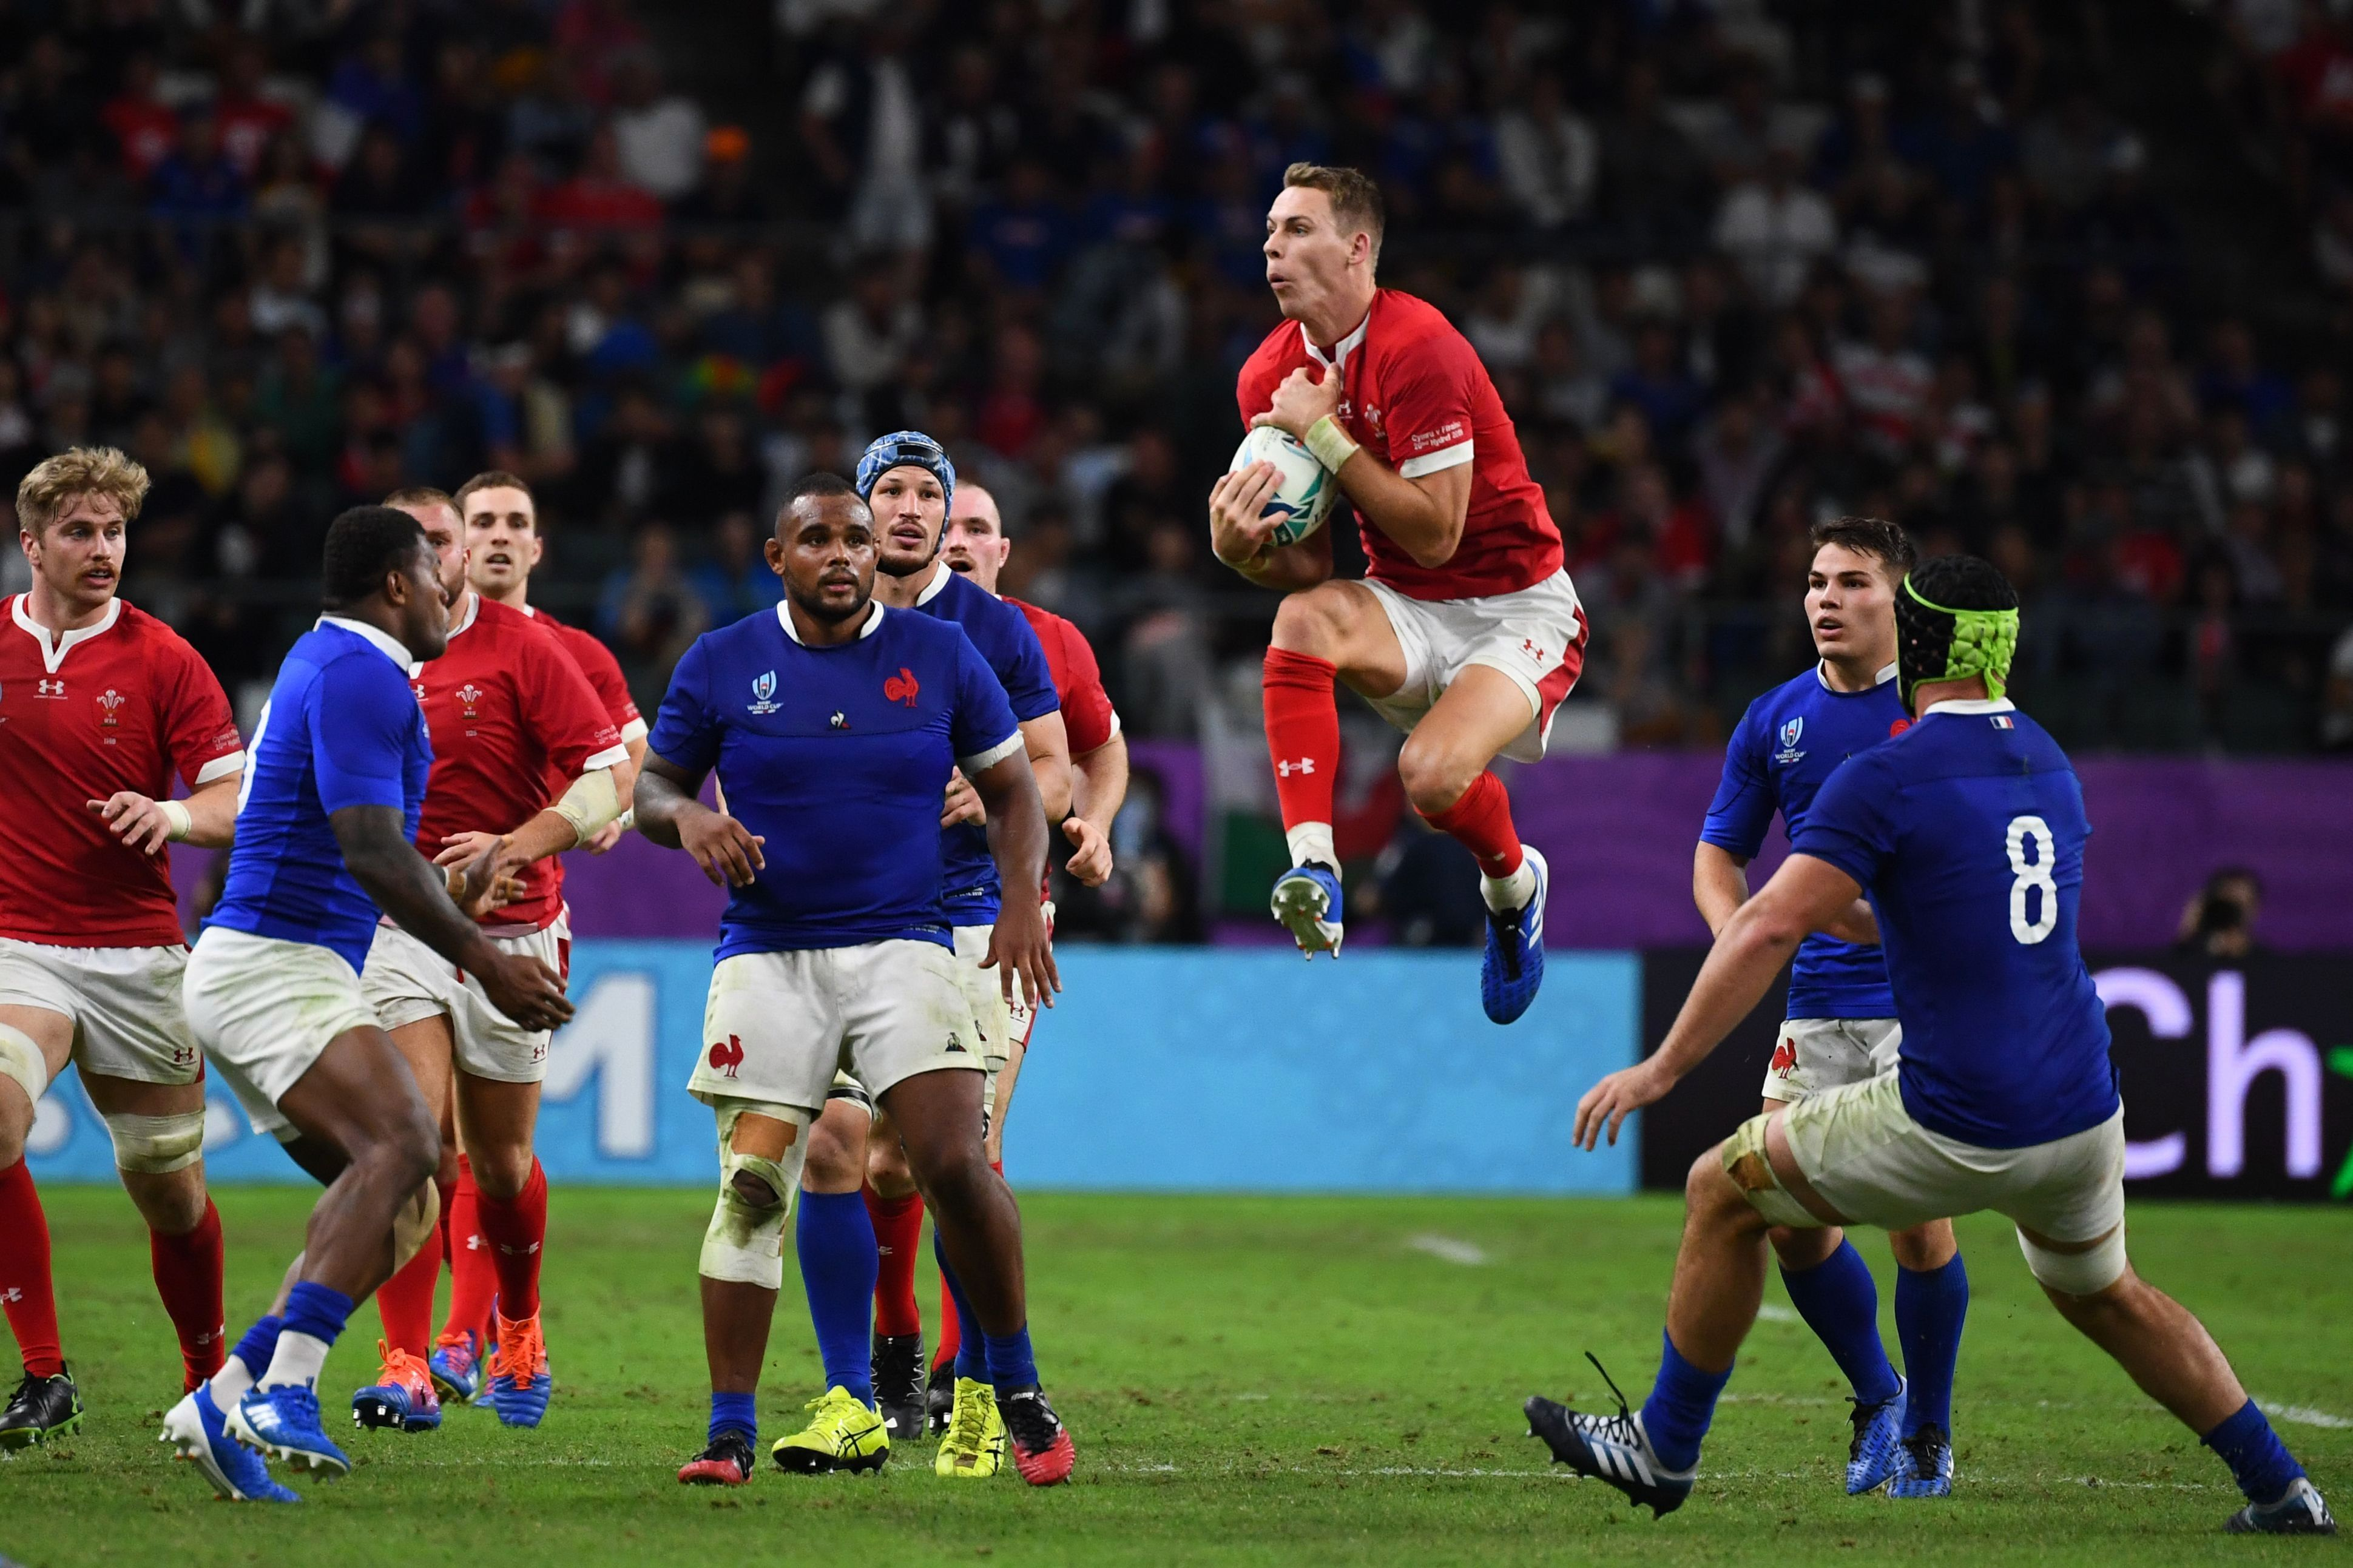 How to Watch live stream Six Nations 2020 rugby in the US